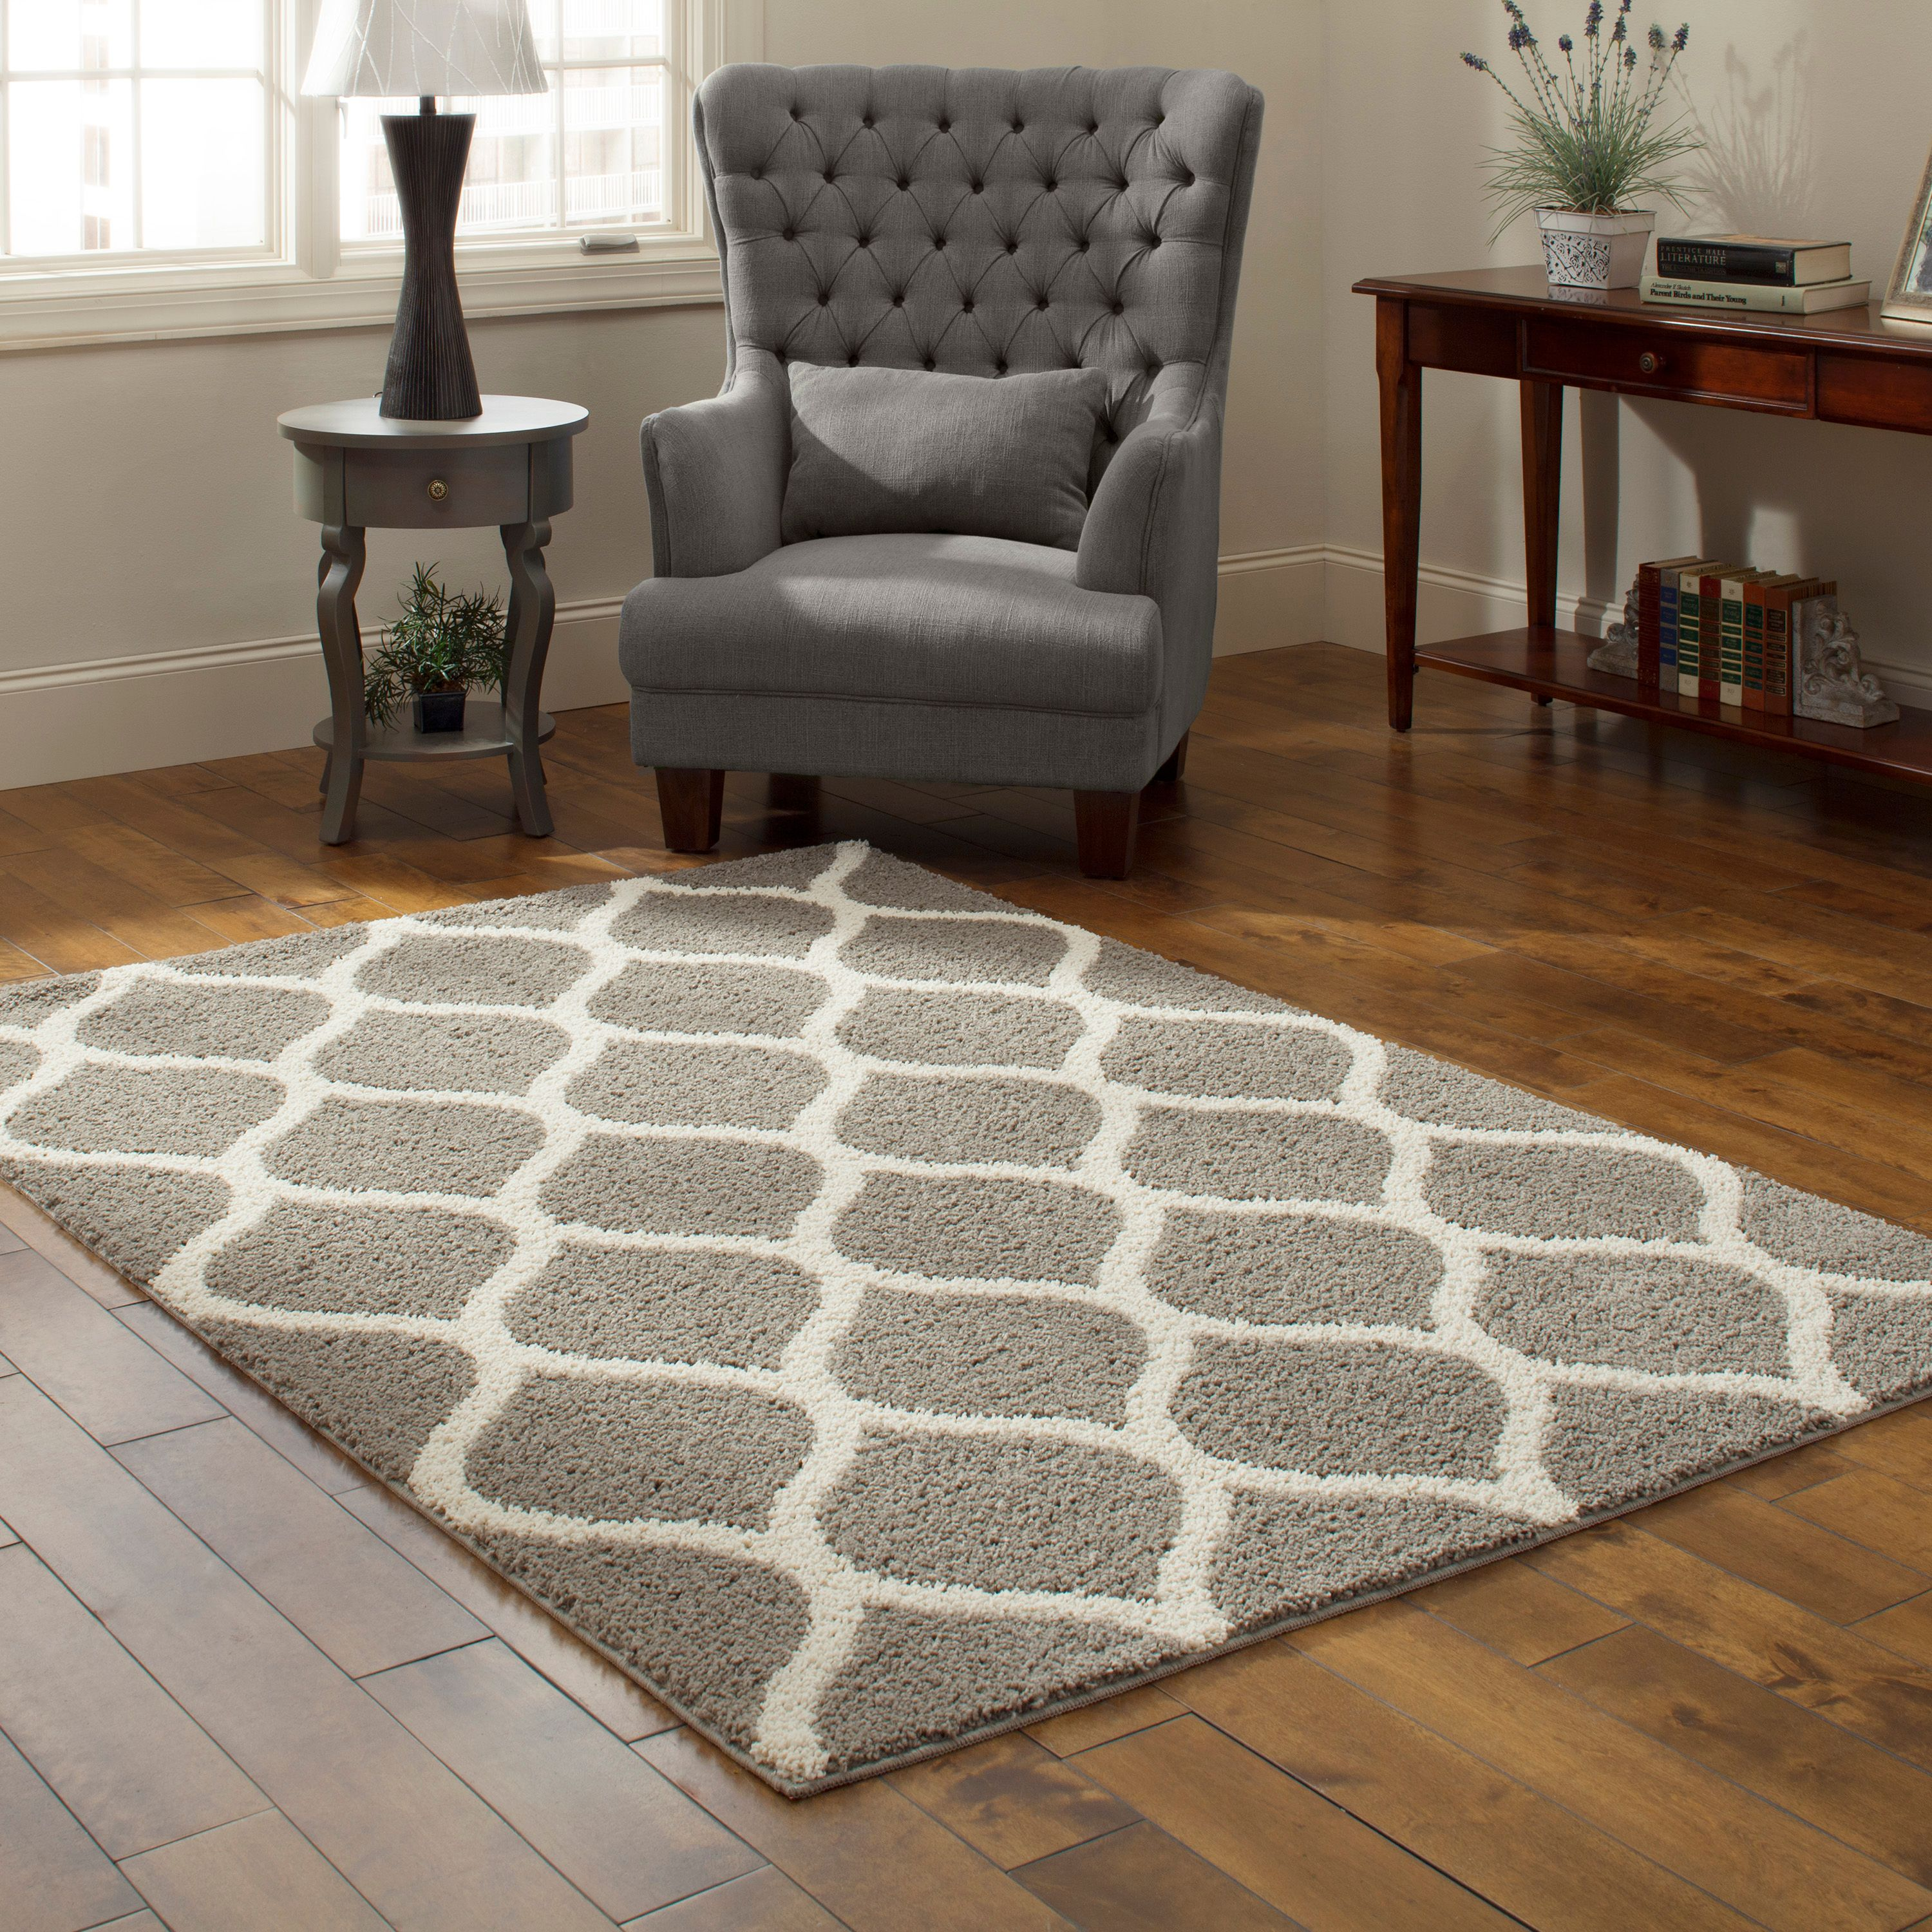 Mainstays Ogee 2 Color Shag Area Rug Or Runner Image 1 Of 3